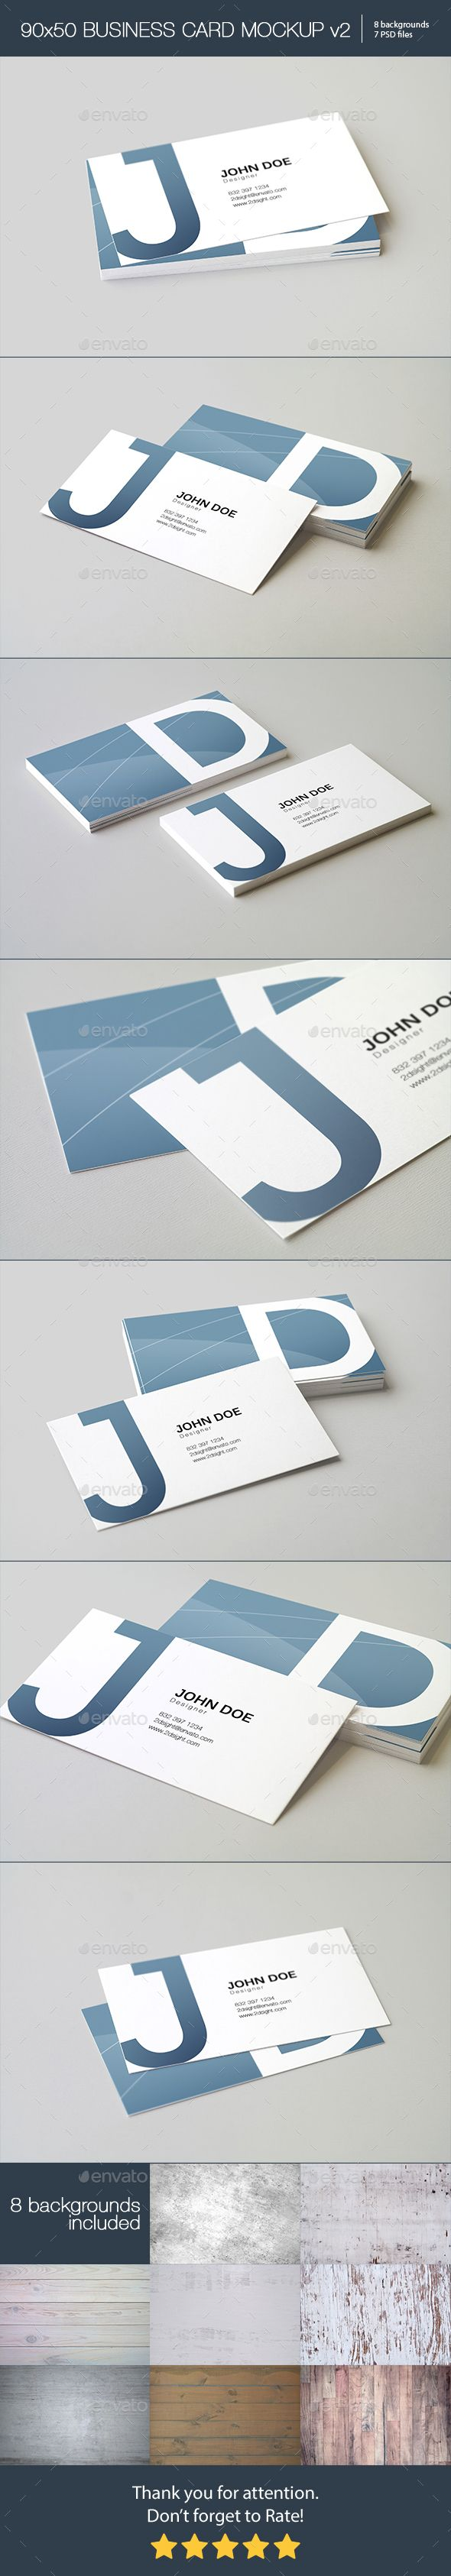 90x50 Business Card Mockup — Photoshop PSD #realistic #business • Available here → https://graphicriver.net/item/90x50-business-card-mockup/18927239?ref=pxcr